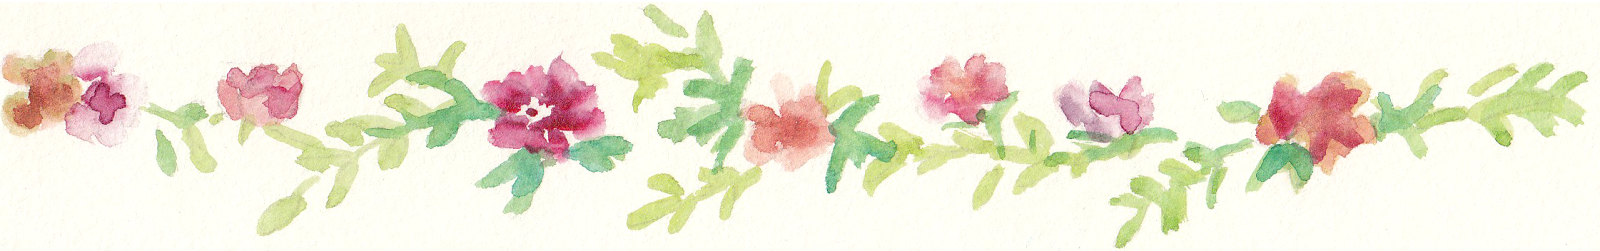 Free Watercolor Floral Clip Art